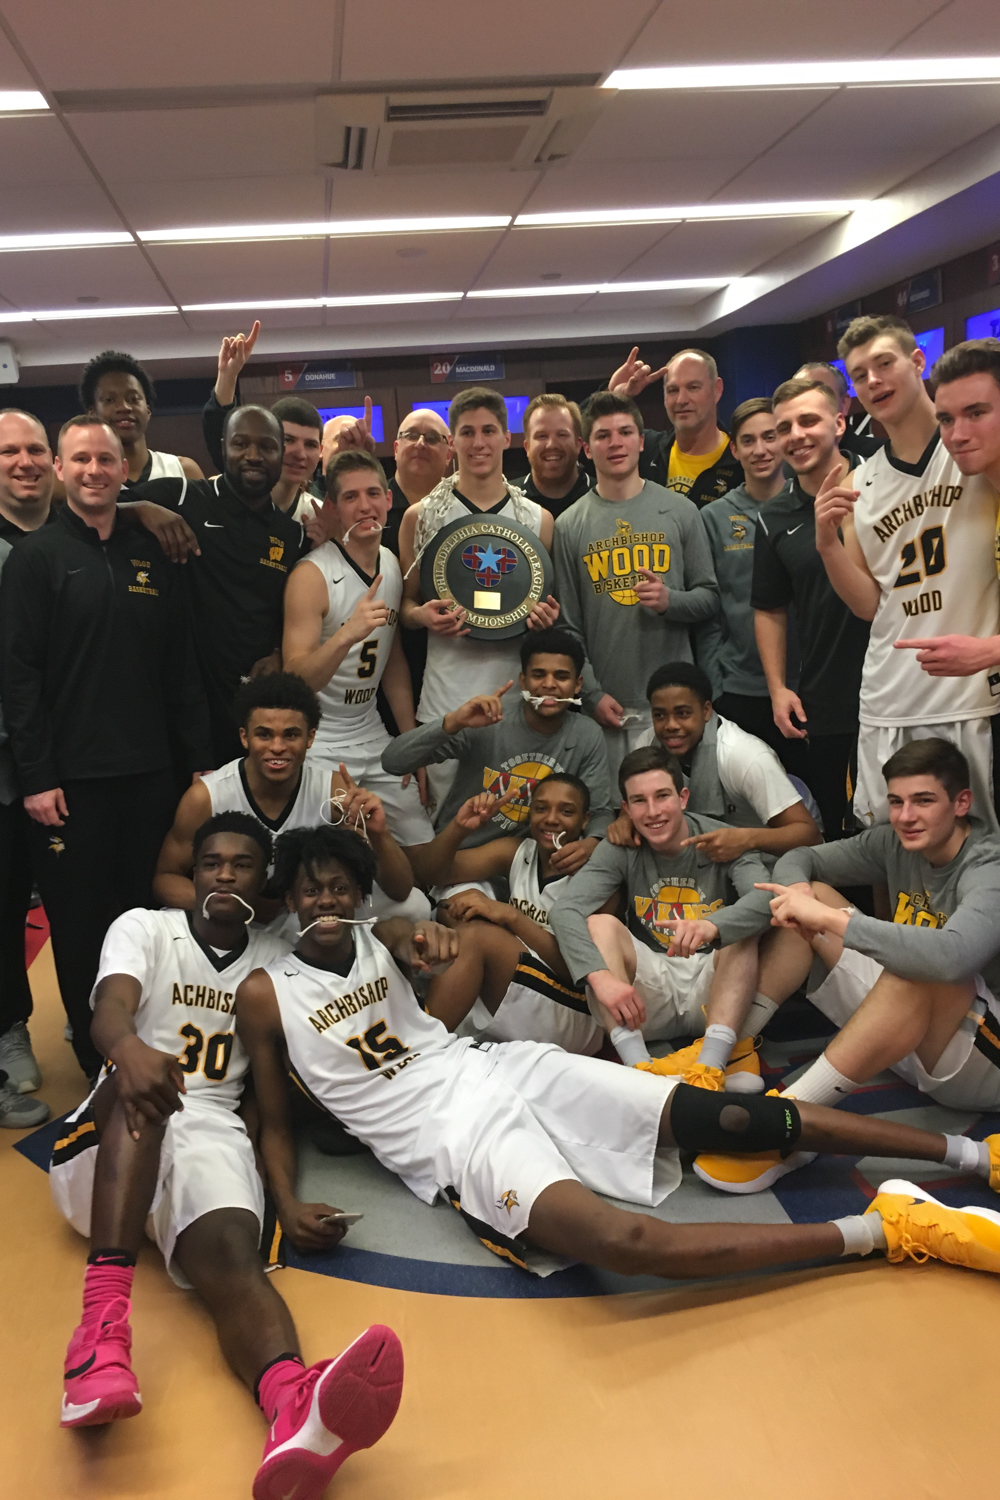 Archbishop Wood Boys Basketball Team and Coaches - 2017 PCL Champs - in the locker room at the Palestra after they won the game.